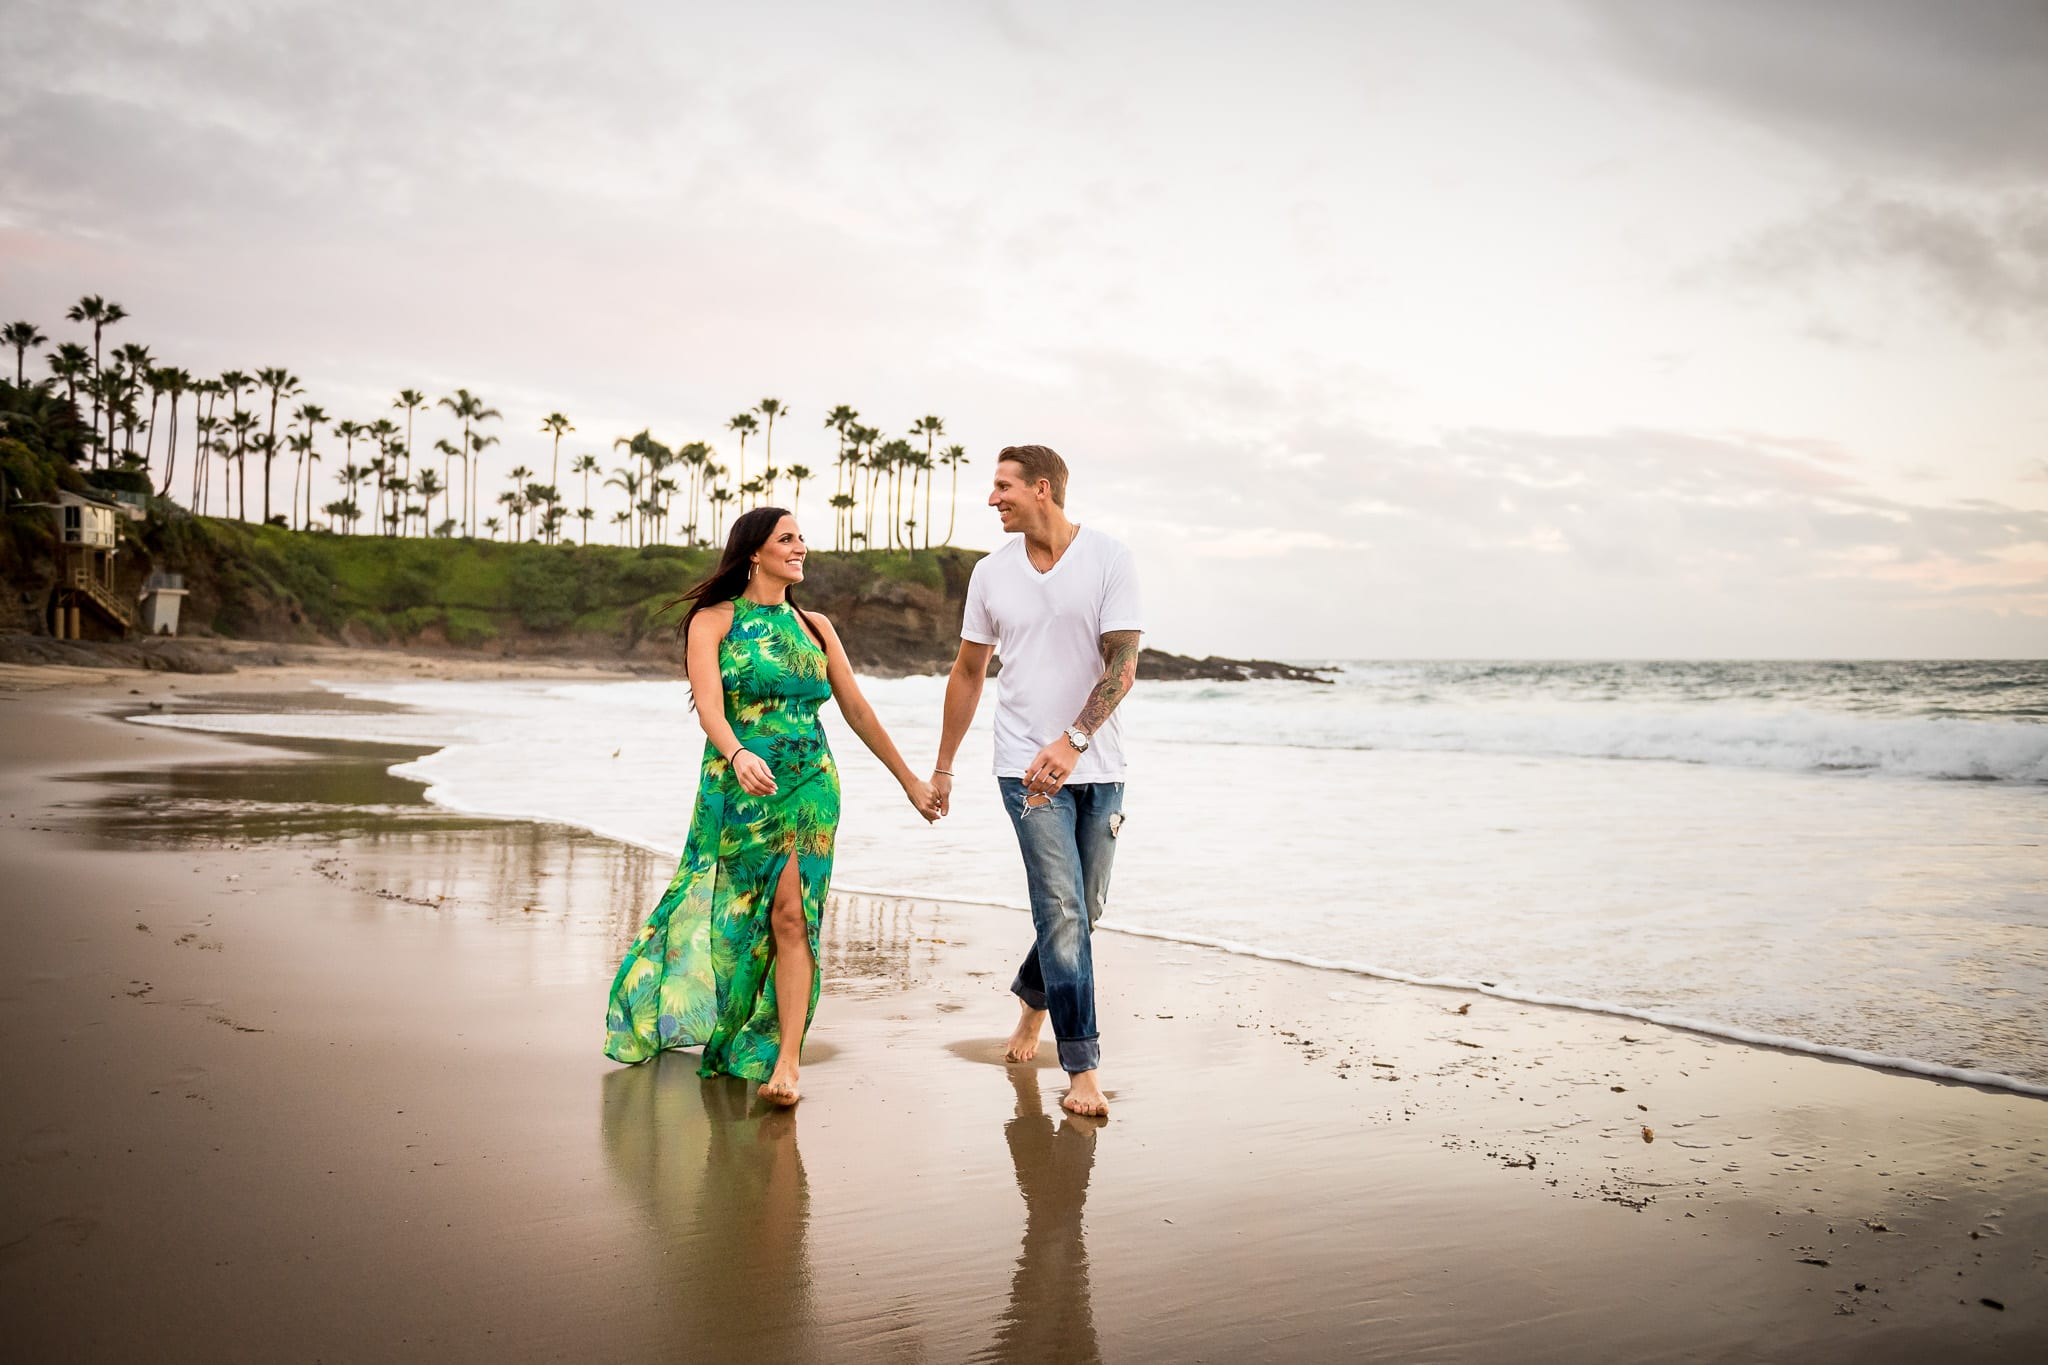 Newly engaged couple holding hands, smiling at each other, and walking barefoot on the sandy beach at Crescent Bay Beach in Laguna Beach, California. The women is in a colorful floral printed green dress and the man is wearing a white t-shirt with one arm adorned with a tattoo sleeve